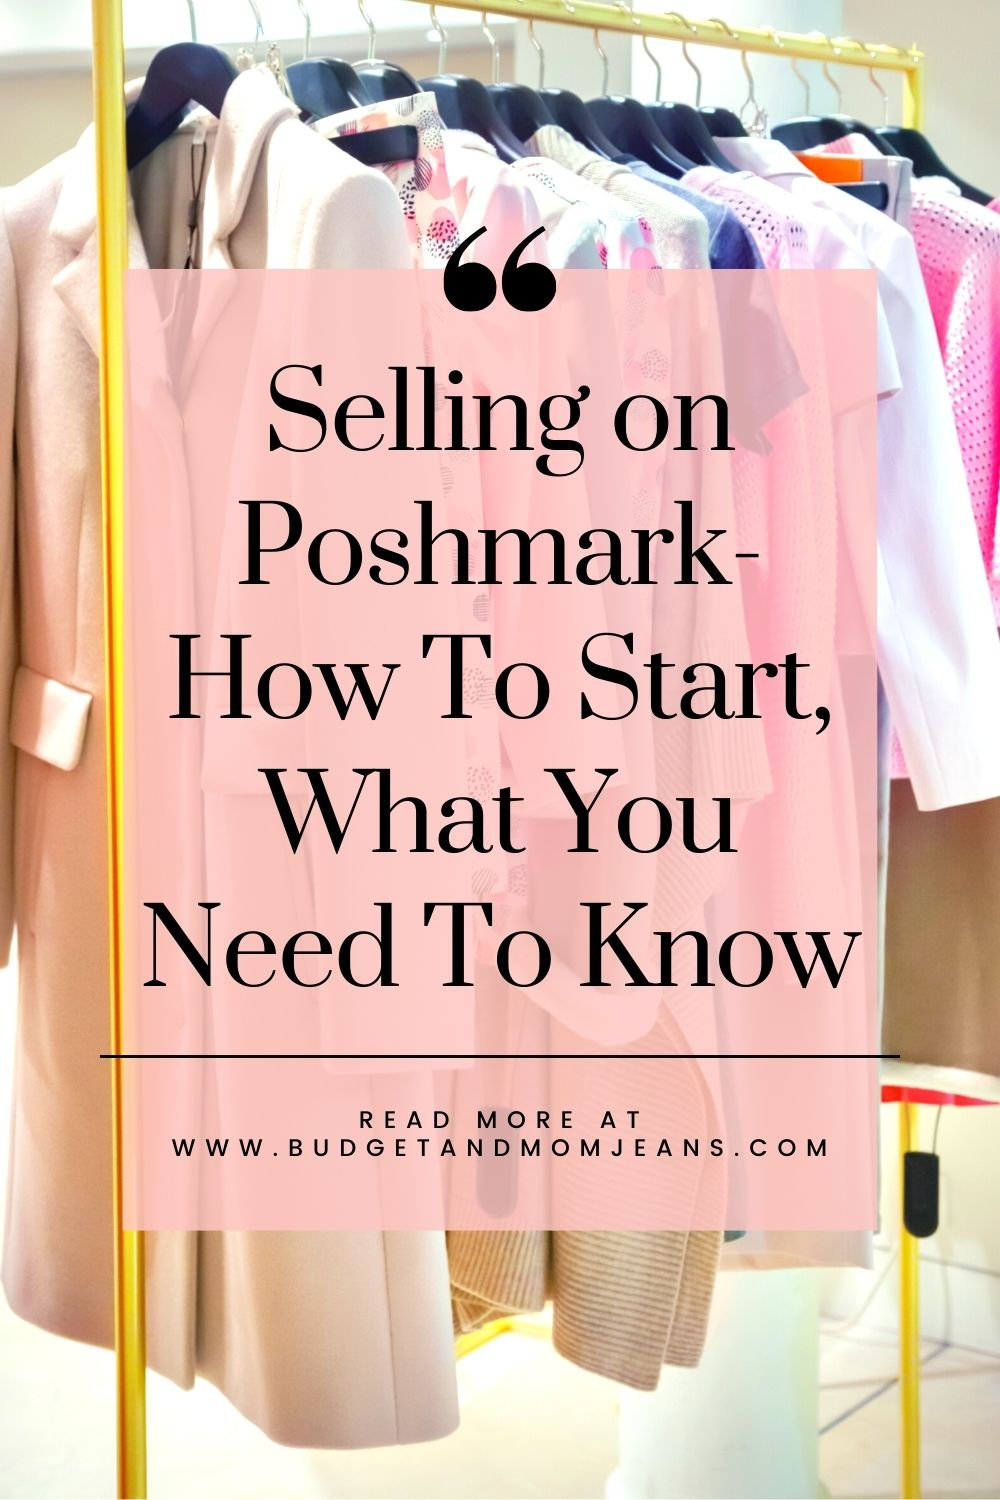 Selling on Poshmark- How To Start, What You Need To Know